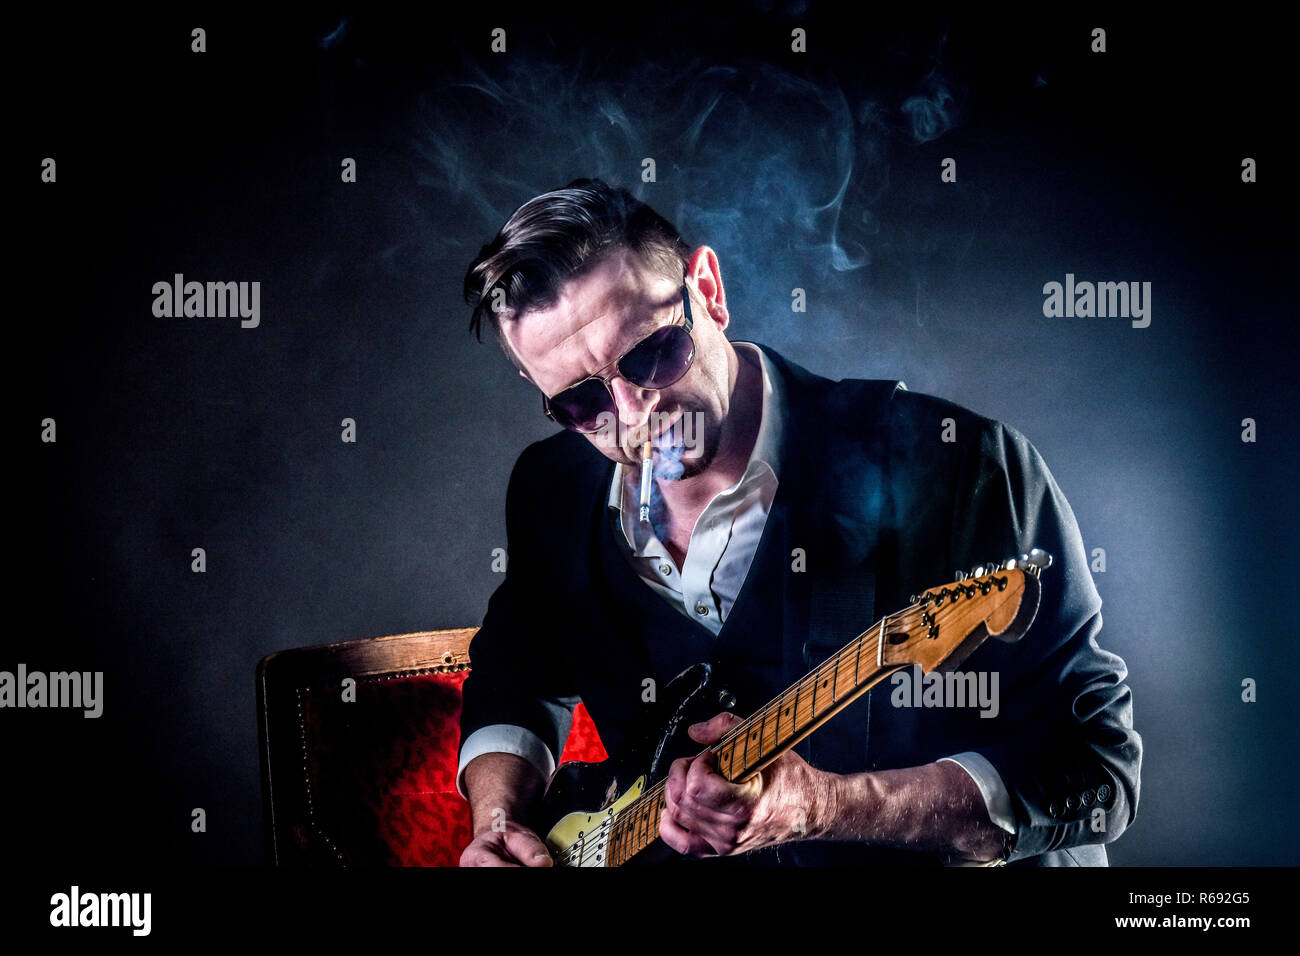 Cool Musician Plays On A Guitar Ans Smokes A Cigarette - Stock Image